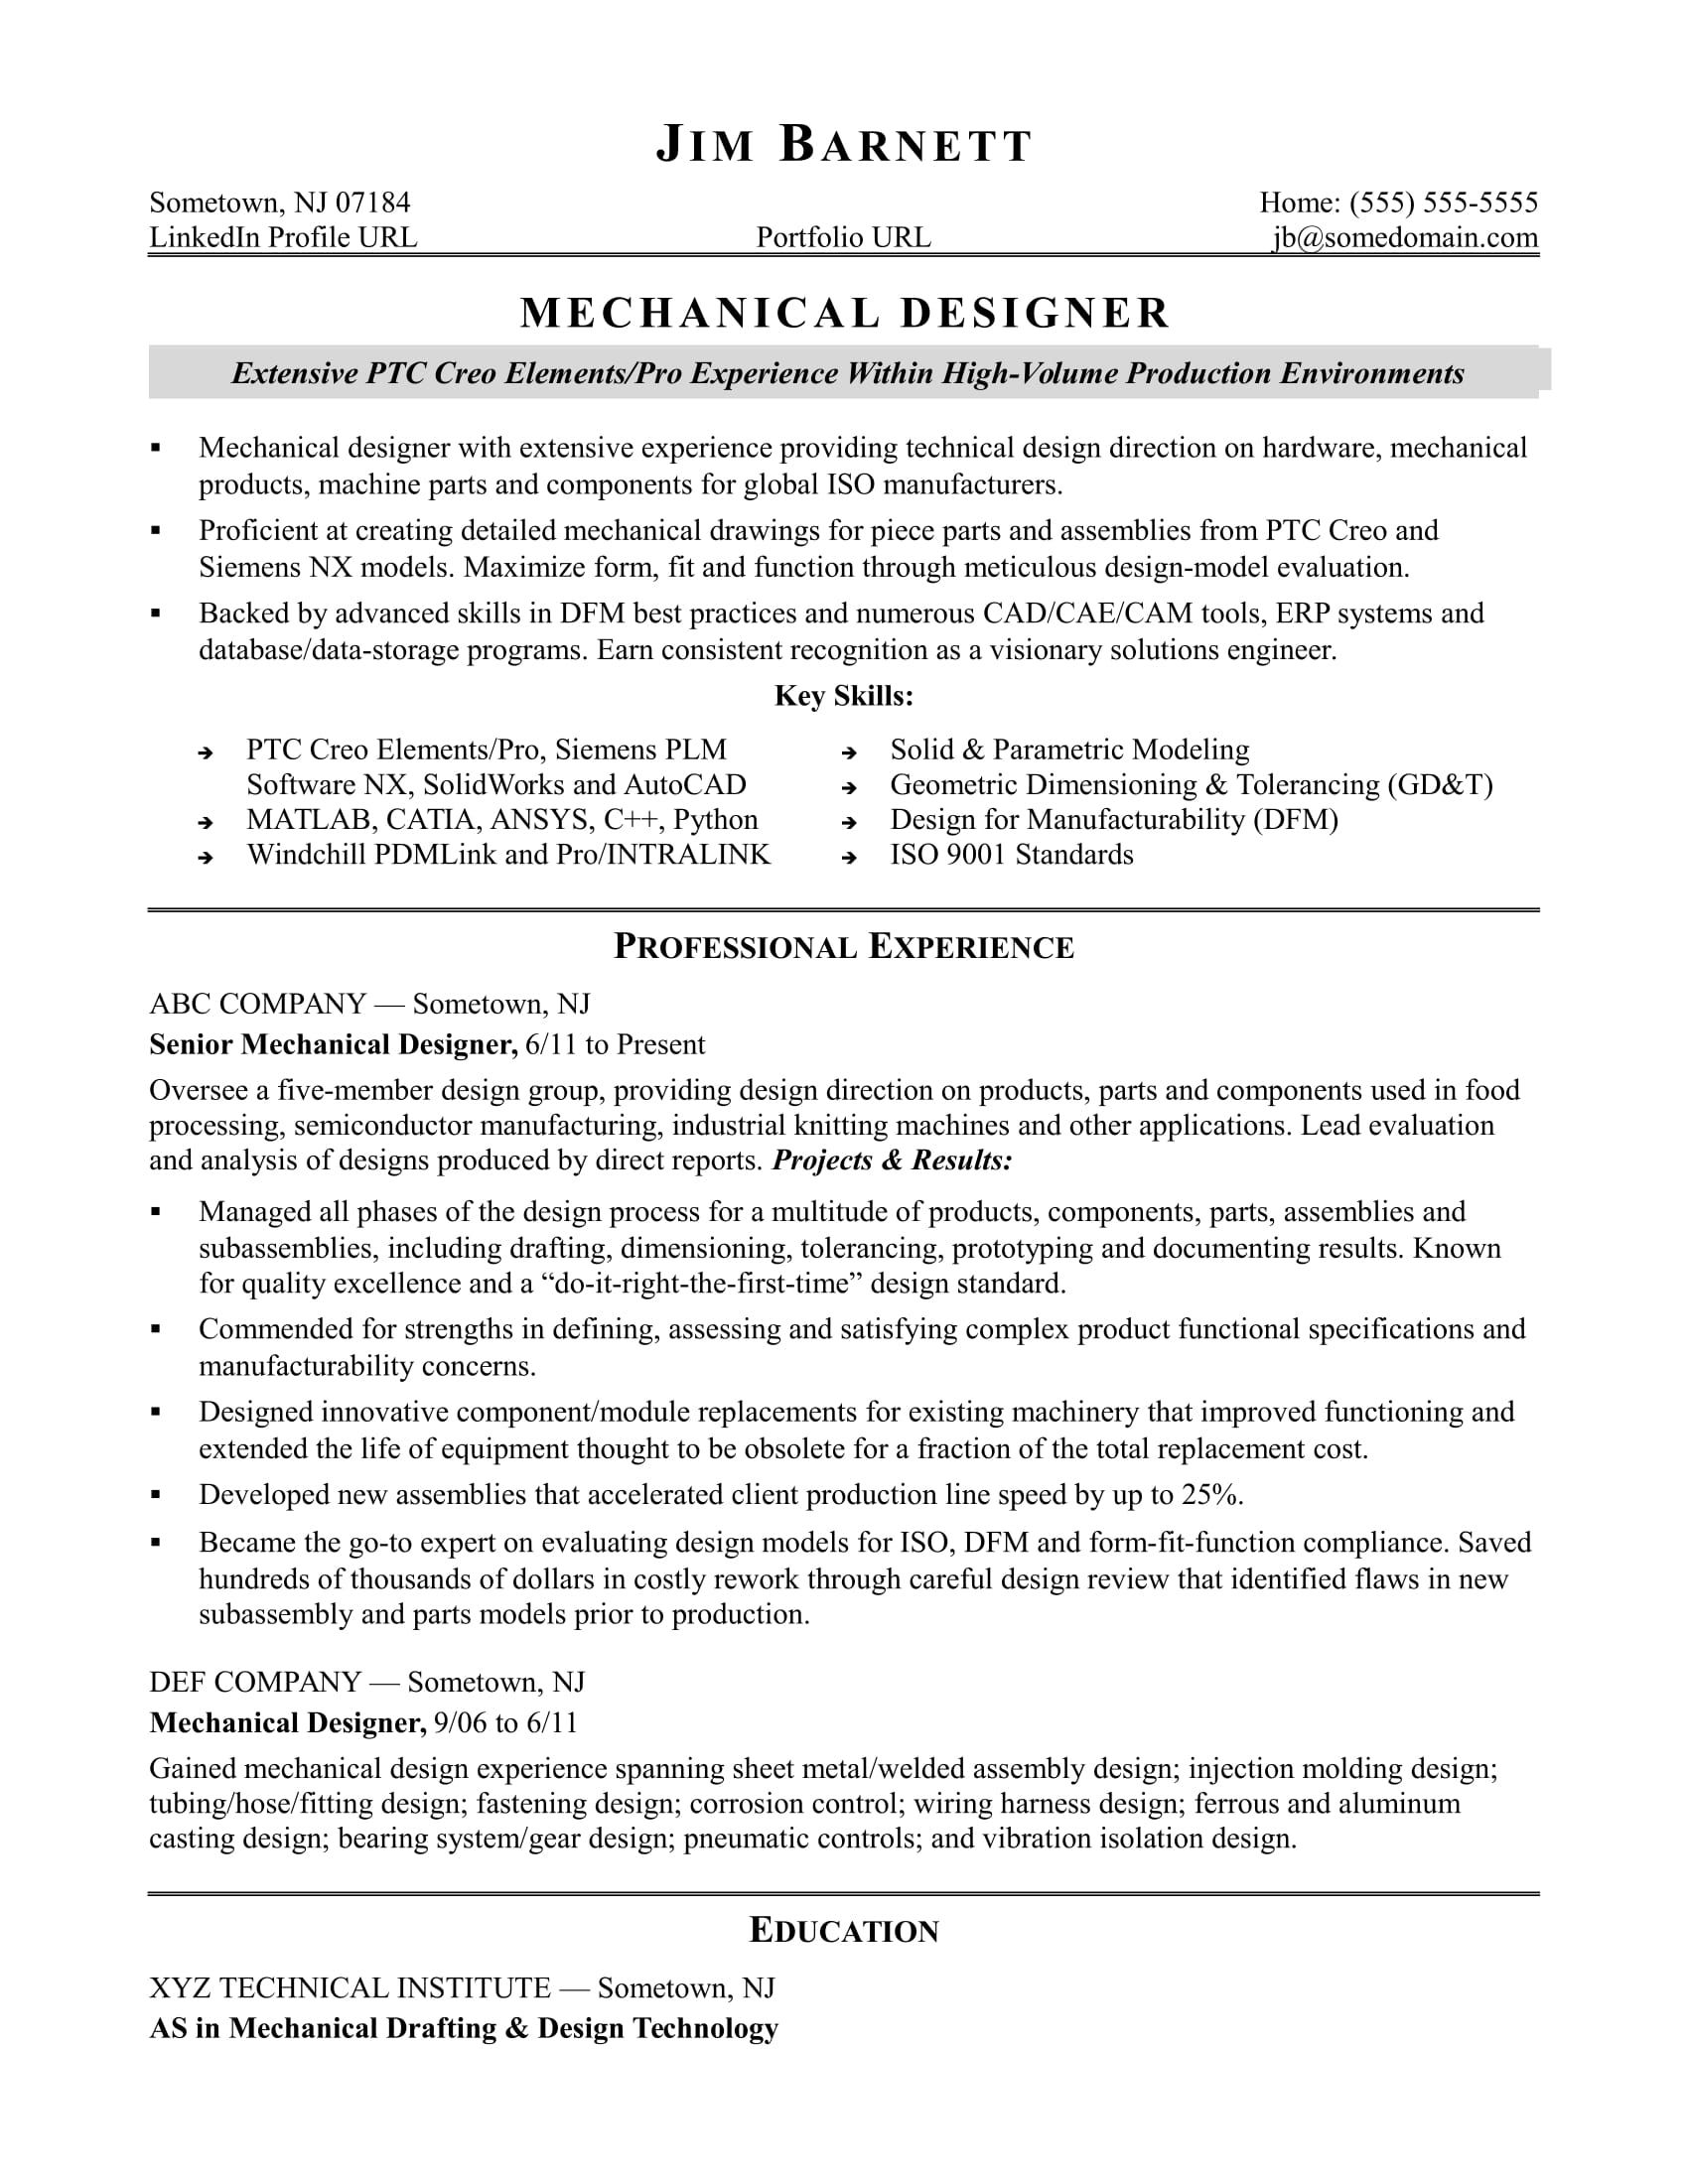 Sample Resume For An Experienced Mechanical Designer Mechanical Engineer Resume Resume Examples Resume Templates